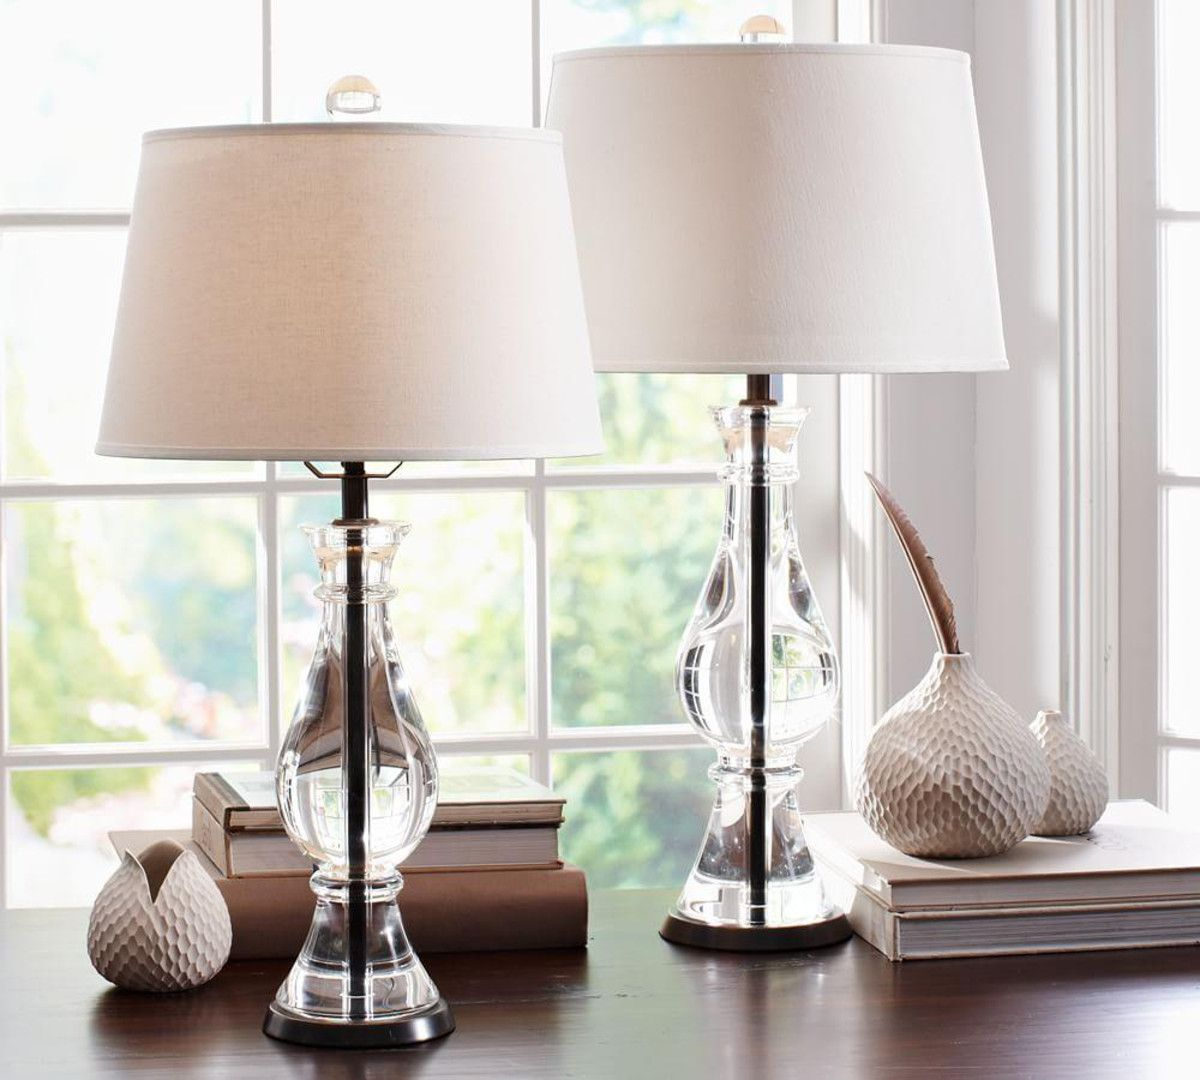 Pottery Barn Marston Lamp: Marston Crystal Table & Bedside Lamp Bases In 2019